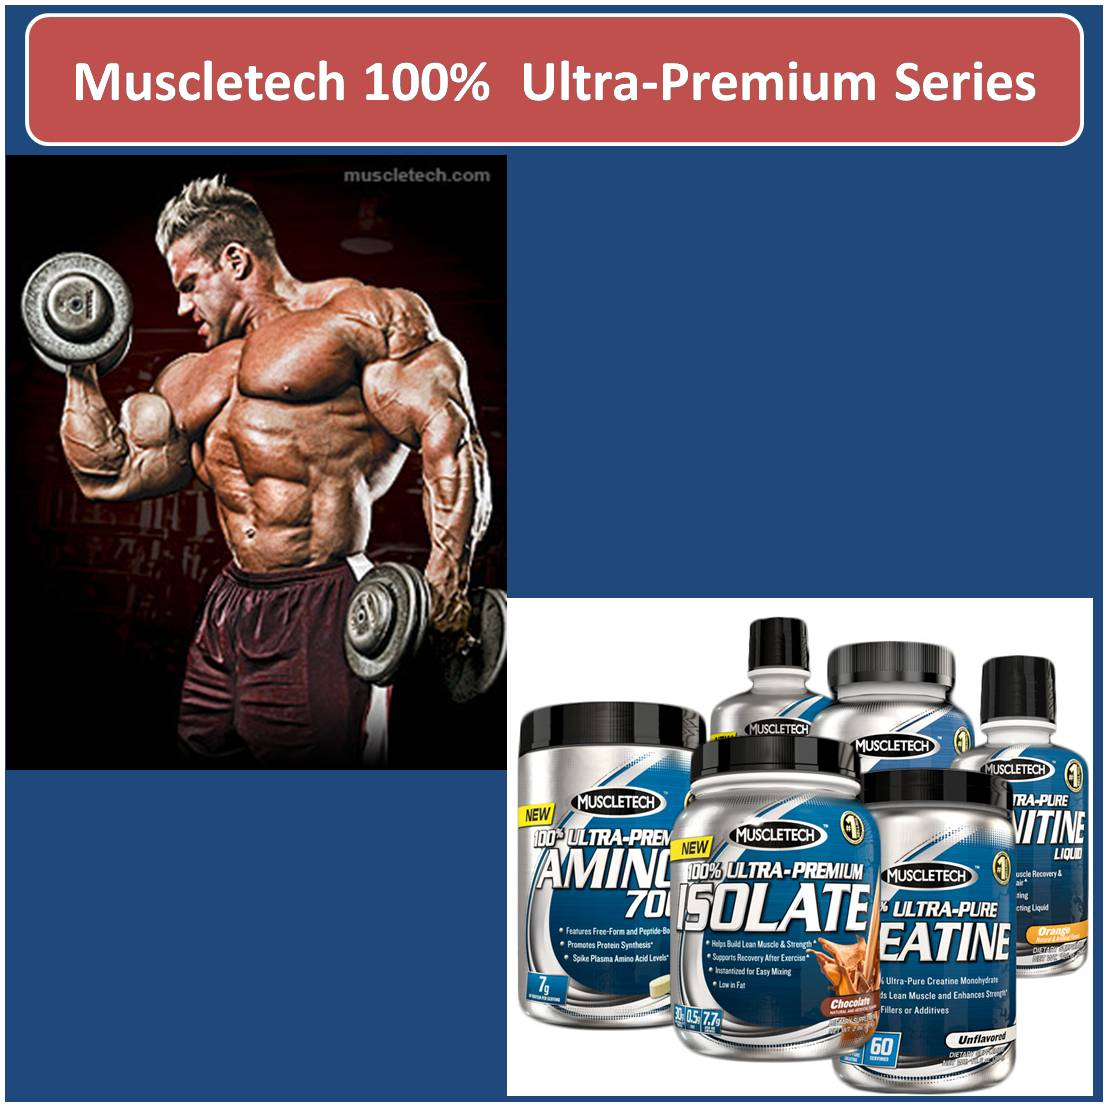 Muscletech 100 percent Ultra-Premium Series